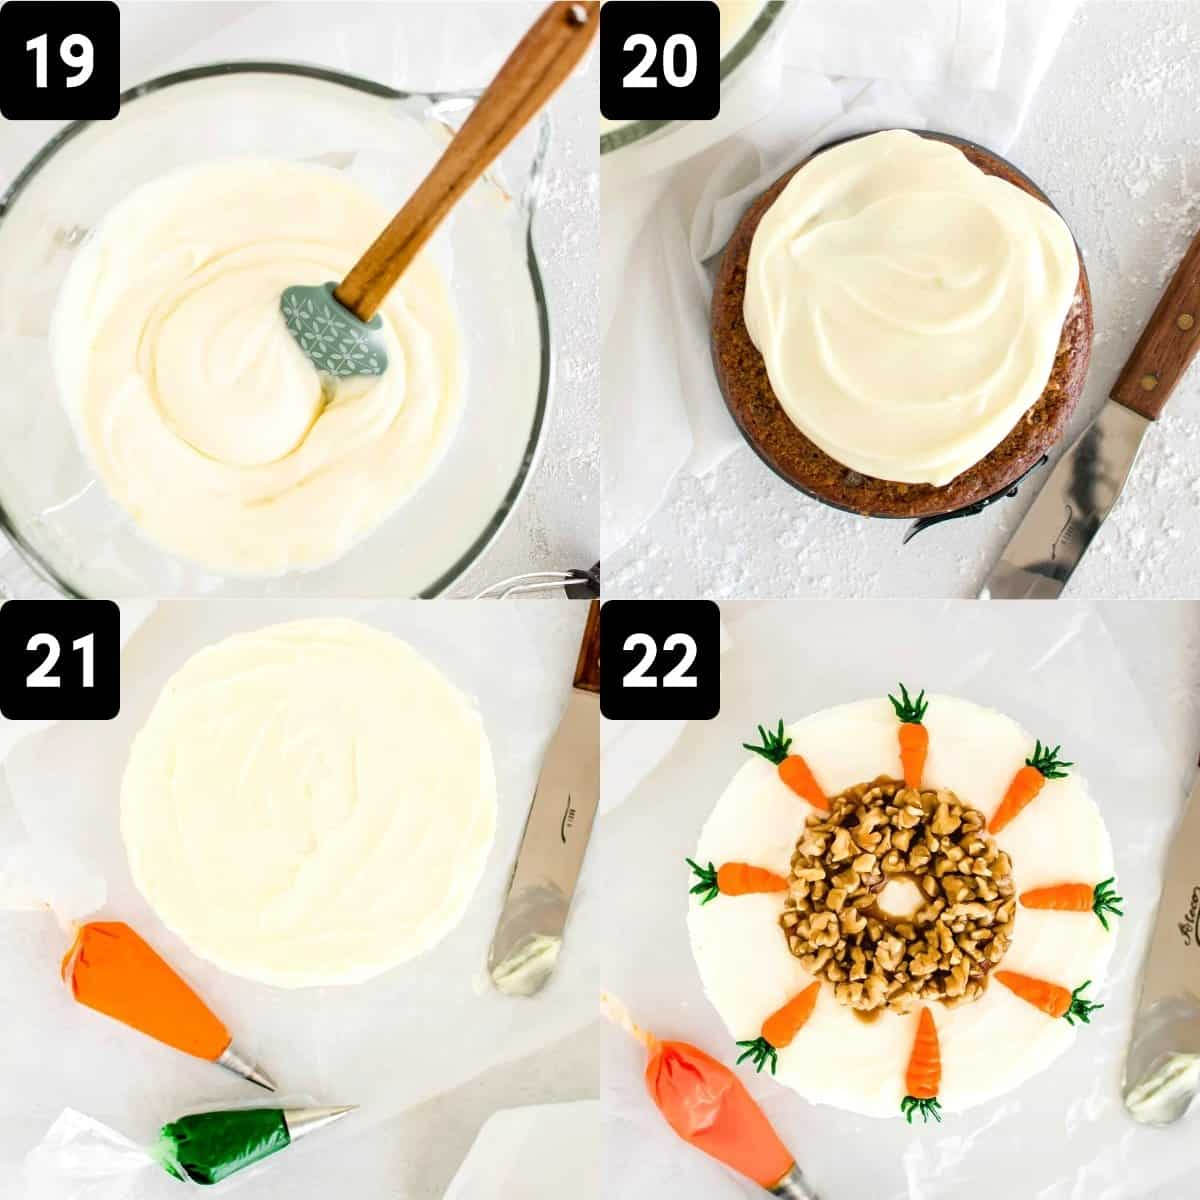 Step-by-step directions to frost and decorate the carrot cake